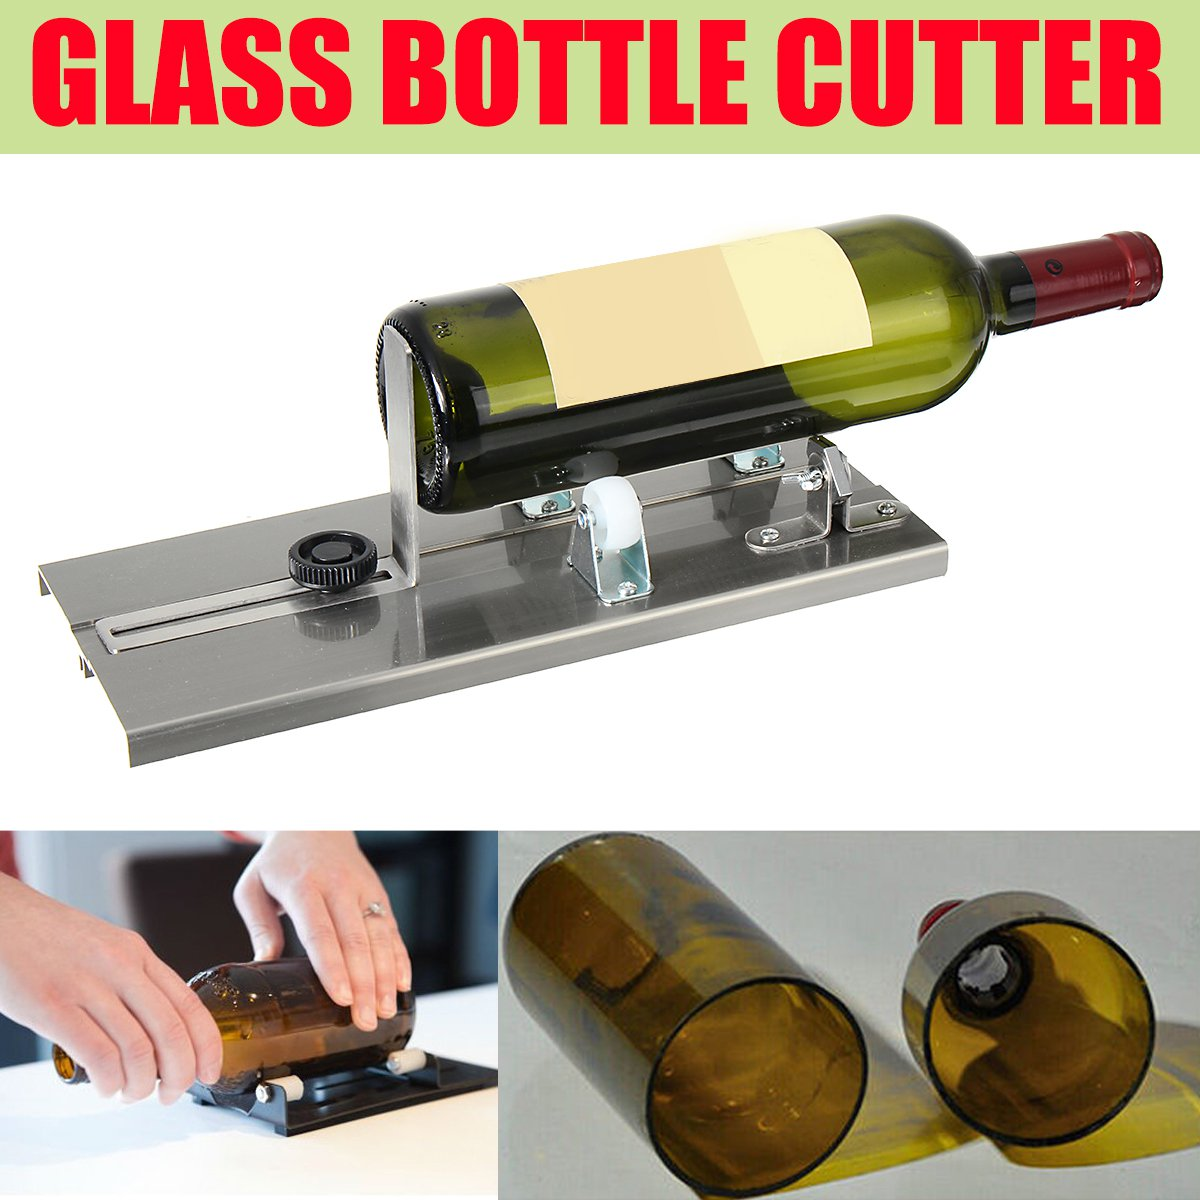 Aluminum Alloy Glass Bottle Cutter Machine Beer Wine Jar Recycle Craft DIY Cutting Tool Kit Construction Tools Glass Sculptures